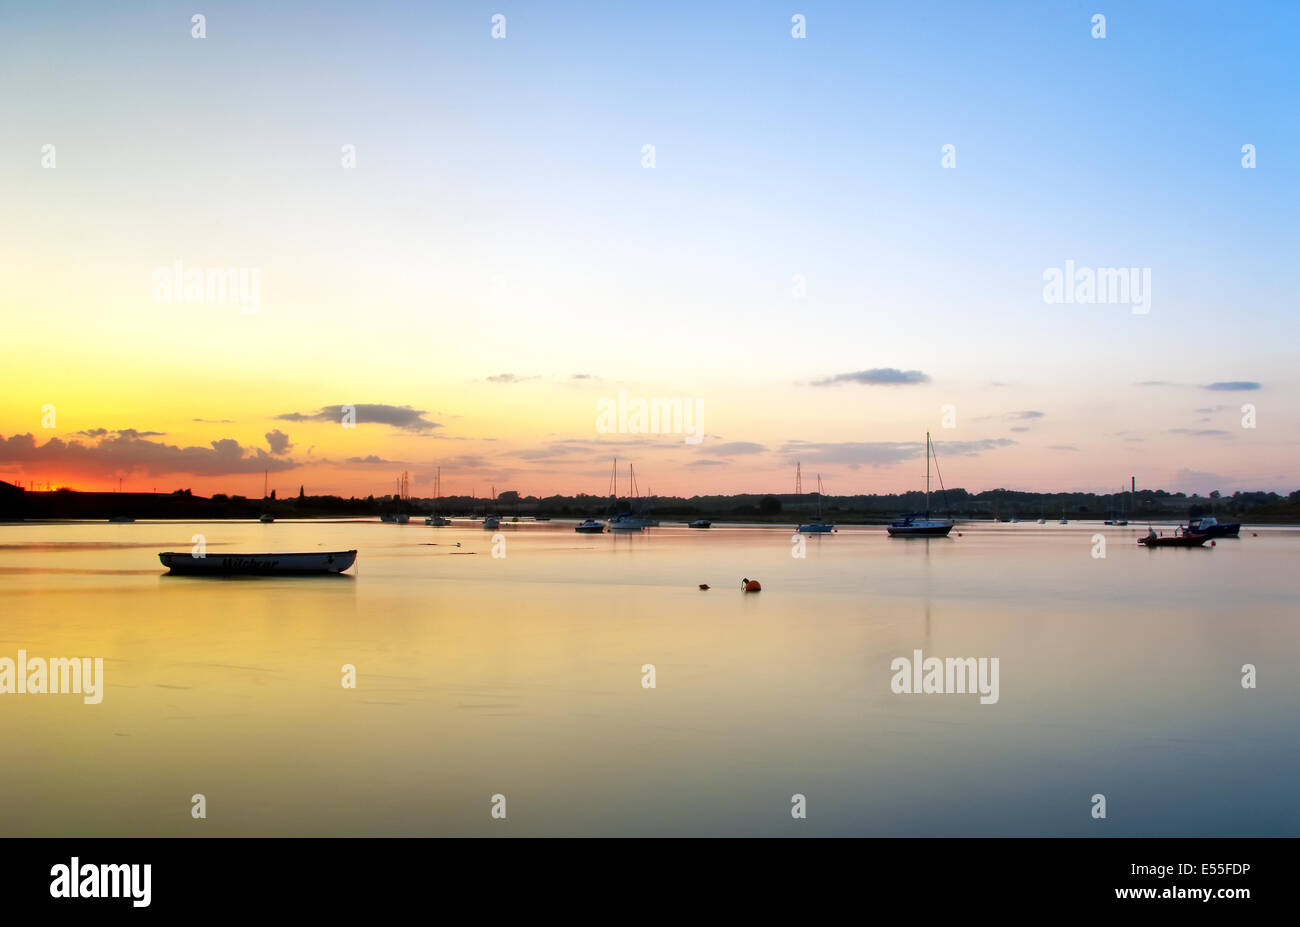 An hour and half wait led to the sunset coinciding with the high tide. - Stock Image